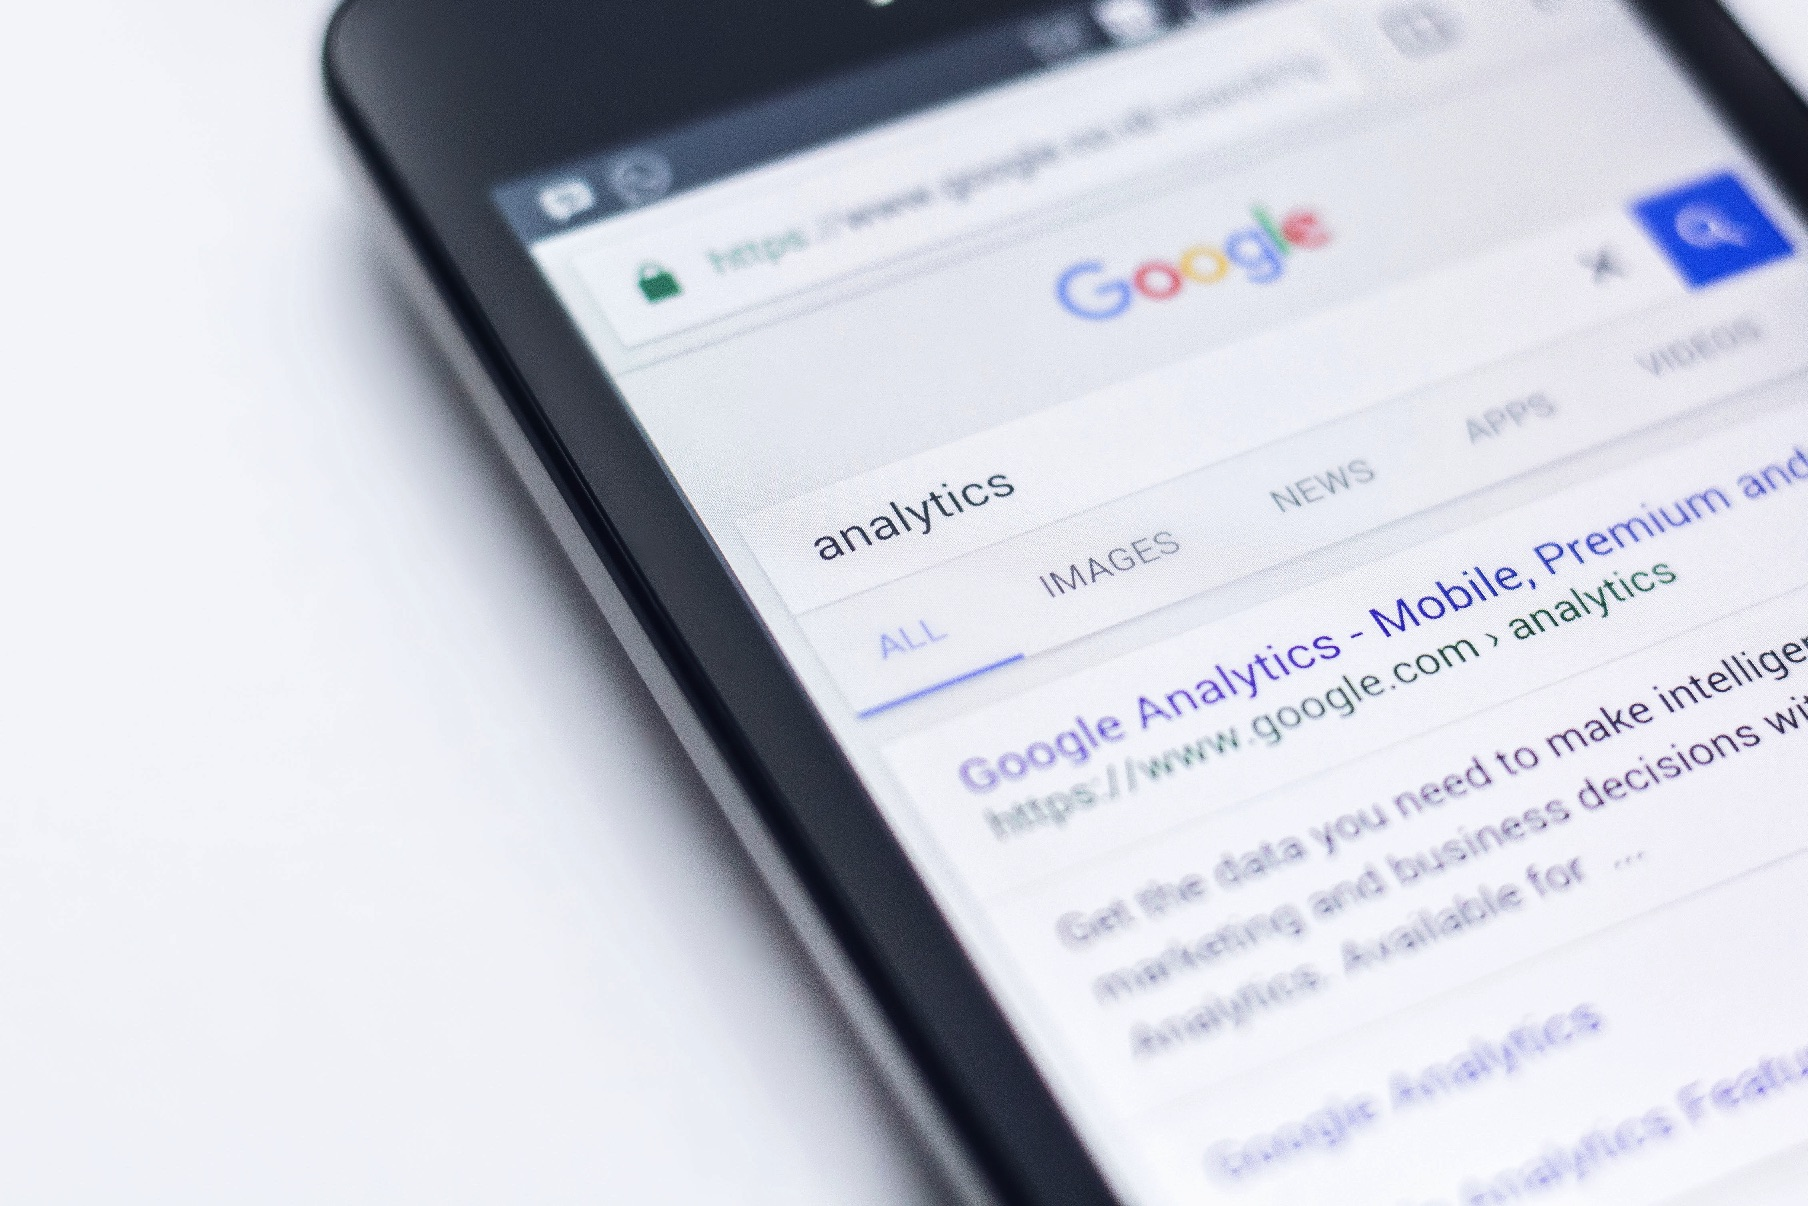 Google's mobile popup algorithm impact on web development